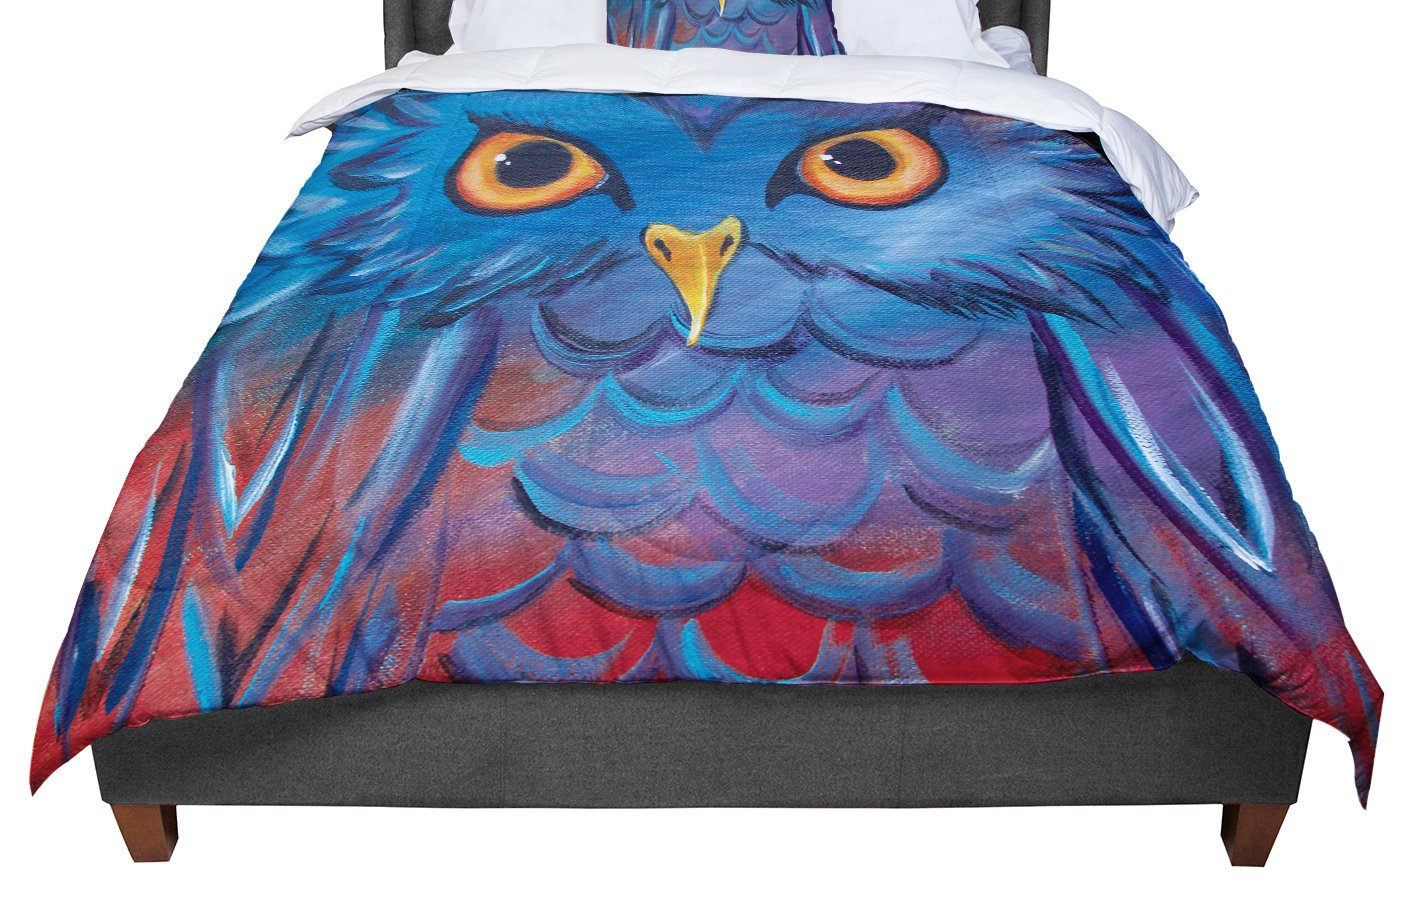 Cal King Comforter KESS InHouse Empire Ruhl Energy Abstract Multicolor Pattern King 104 X 88